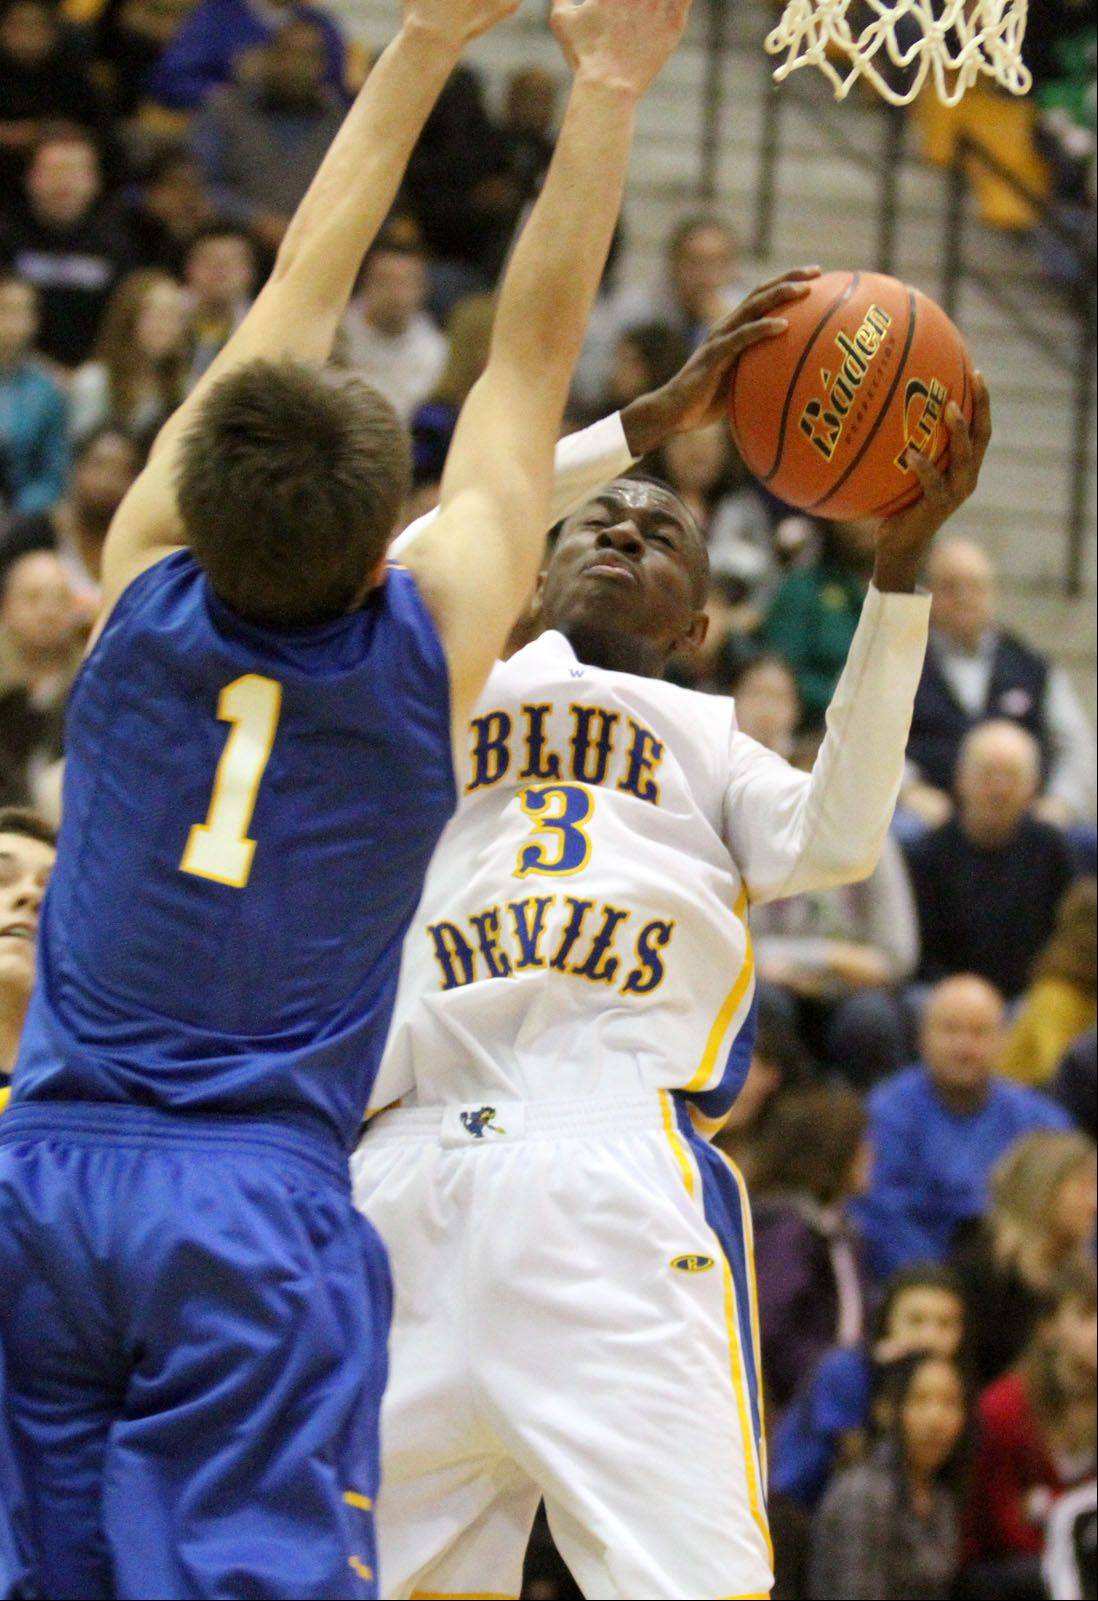 Warren's Kahlil Skinner shoots against Lake Forest defender Ben Simpson.